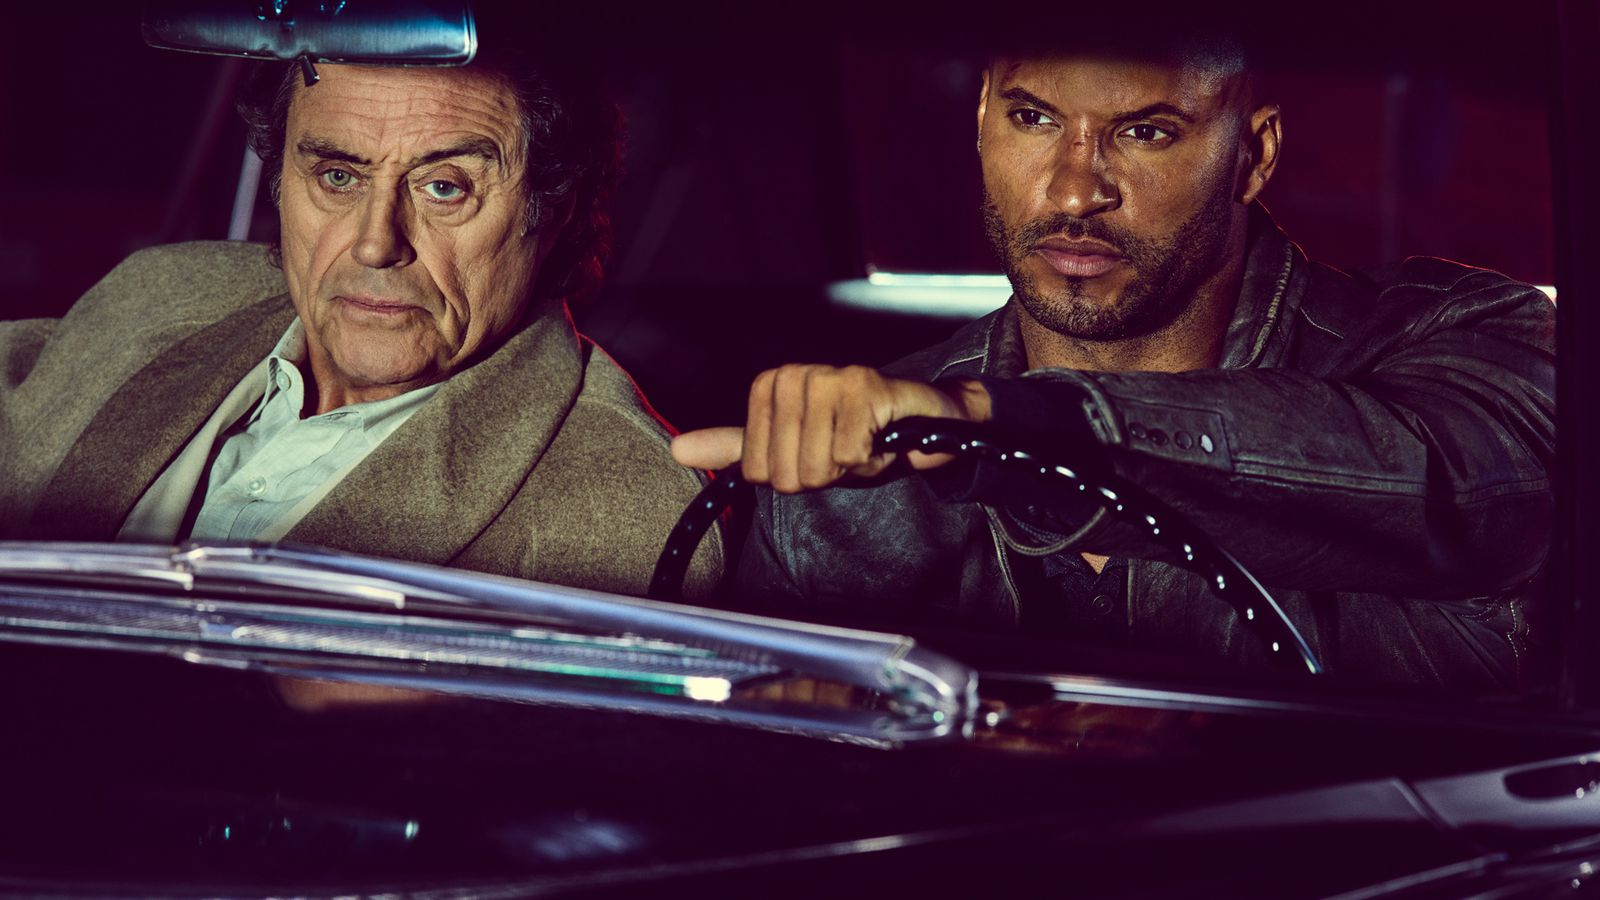 American Gods review: This may be Bryan Fuller at his finest